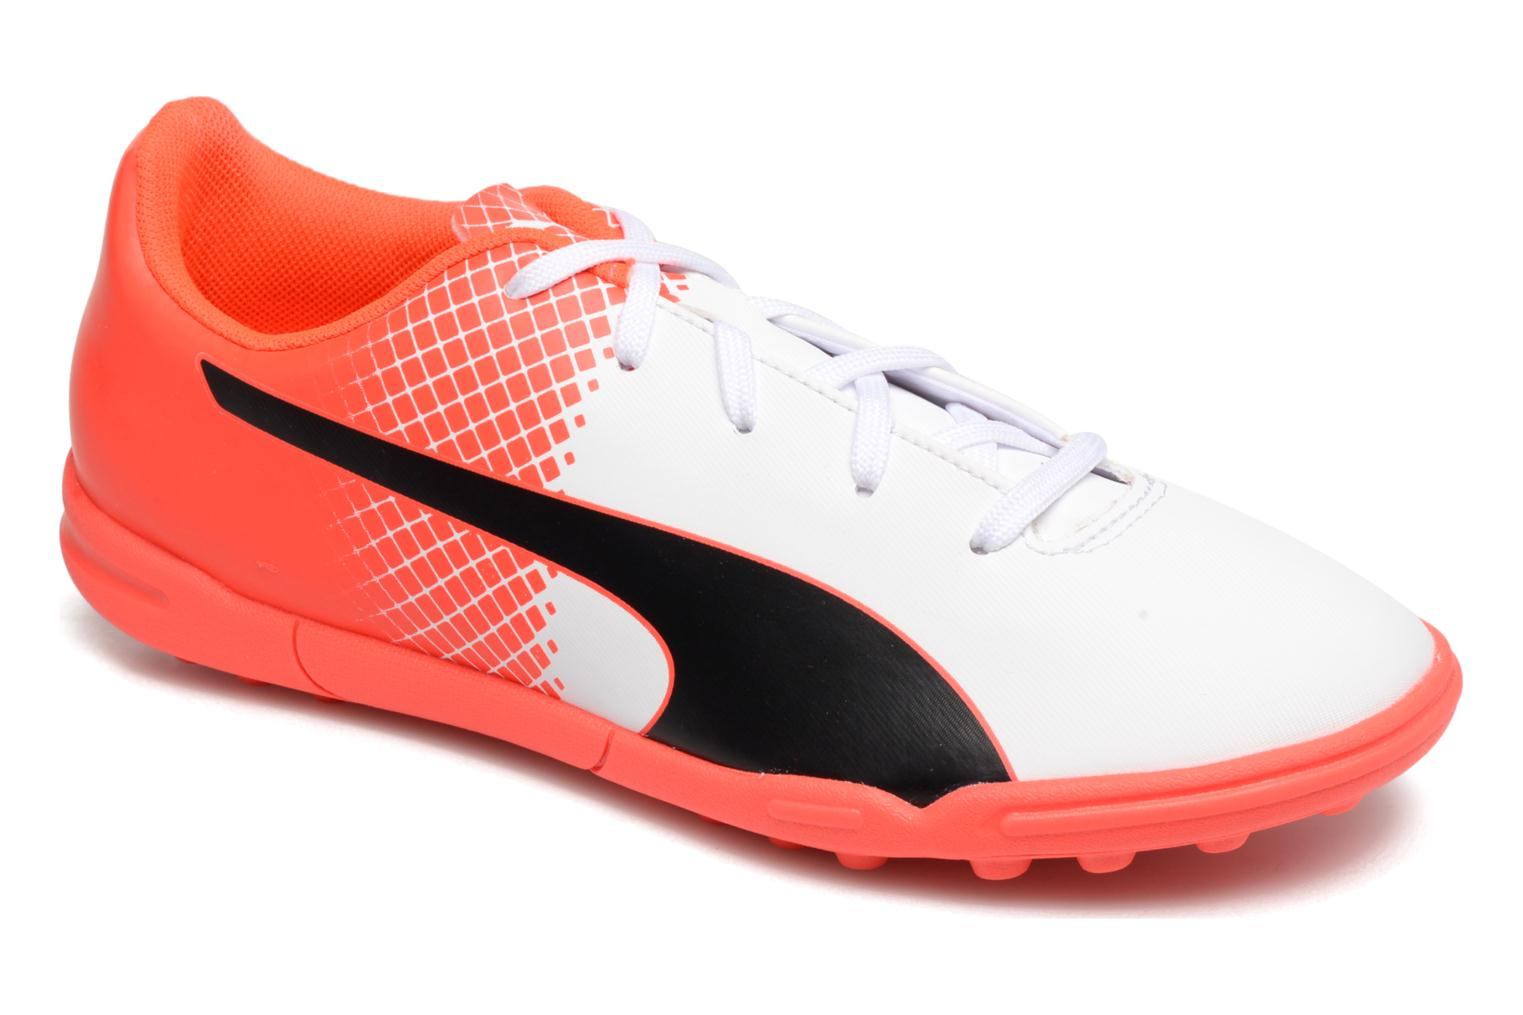 Evospeed 5 5 Tt Jr Red